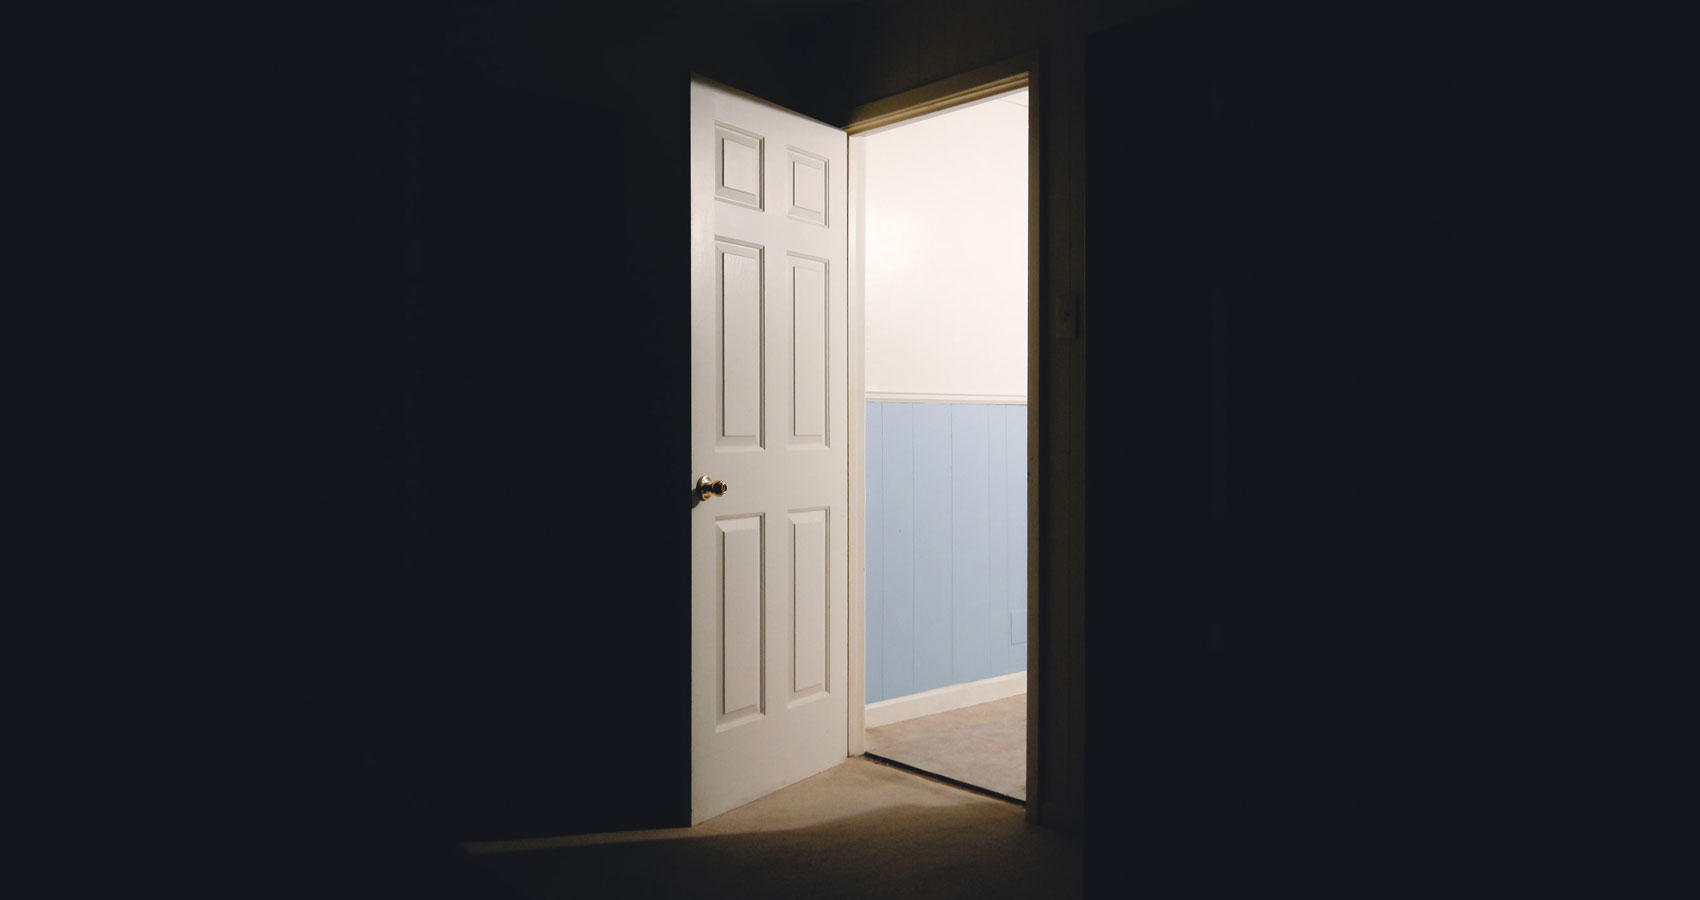 Empty Bedrooms, a poem written by Ricky Hawthorne at Spillwords.com